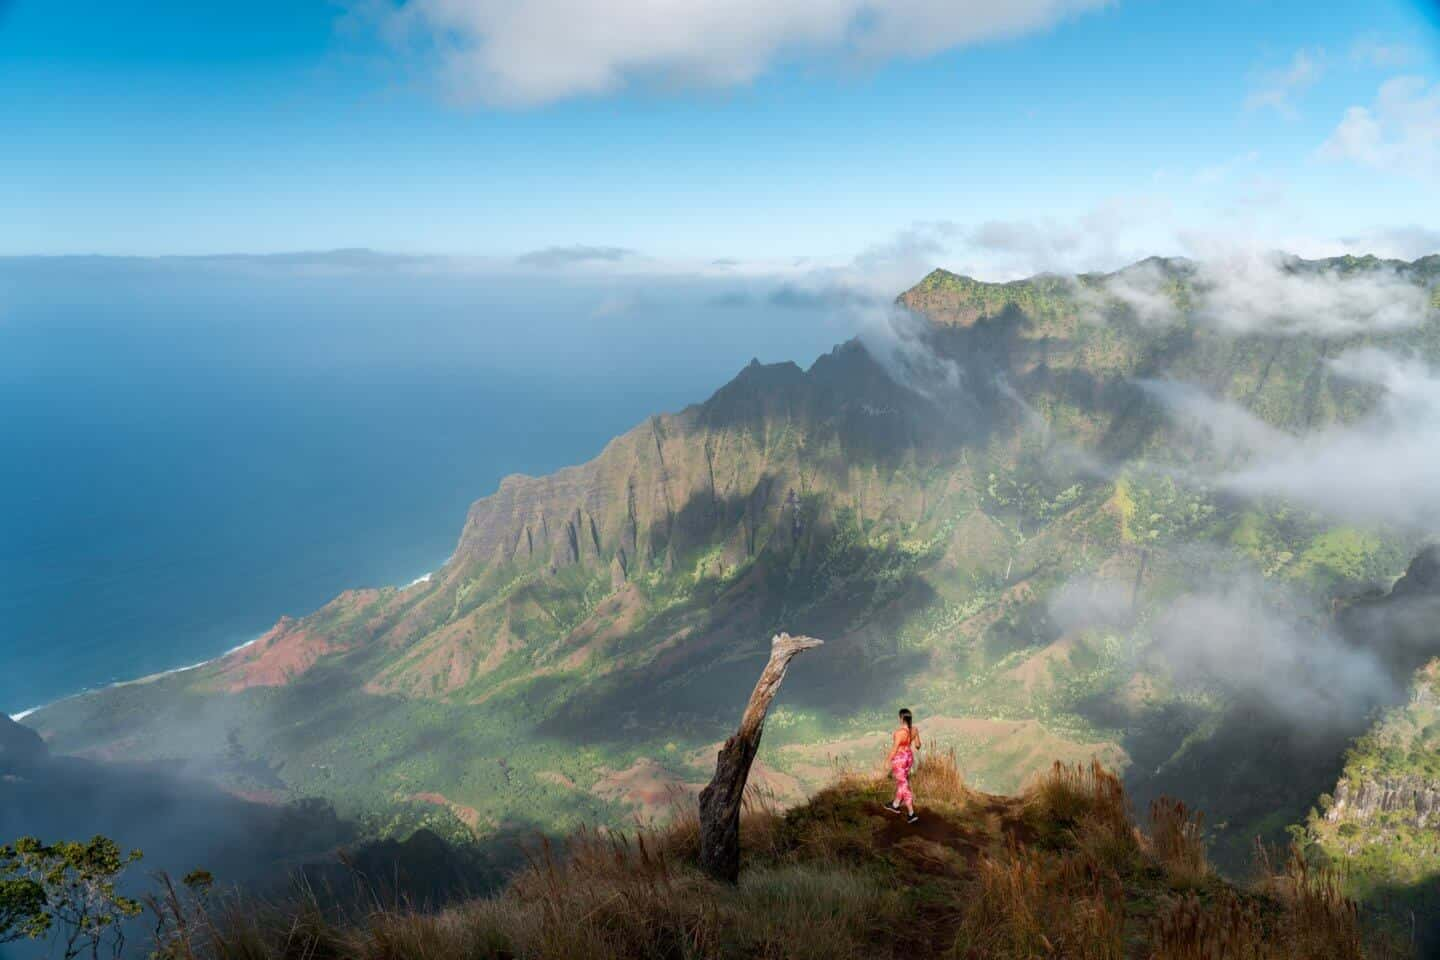 Gazing out over the Kalalau Valley on an atmospheric evening on the Kalepa Ridge Trail in Kauai.